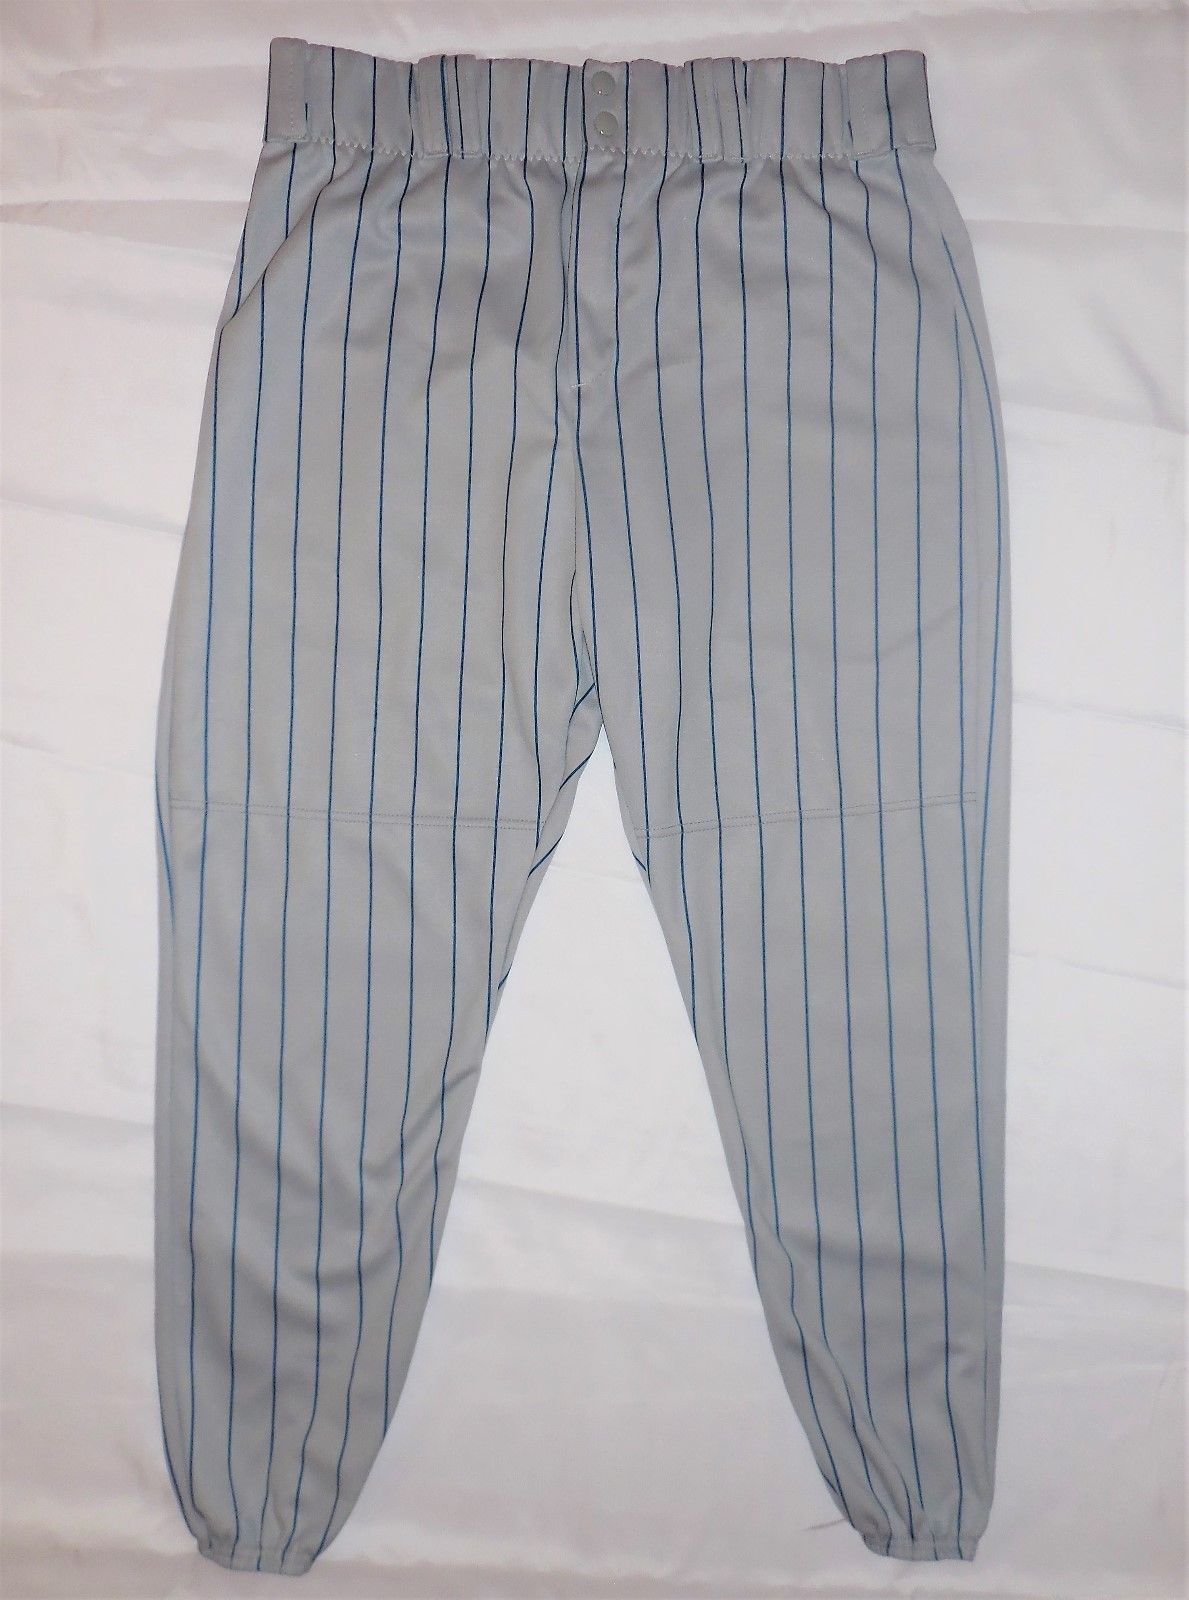 Primary image for Alleson Athletic Ankle Length Pinstripe Baseball Pants Elastic Cuffs XXL 605PINY